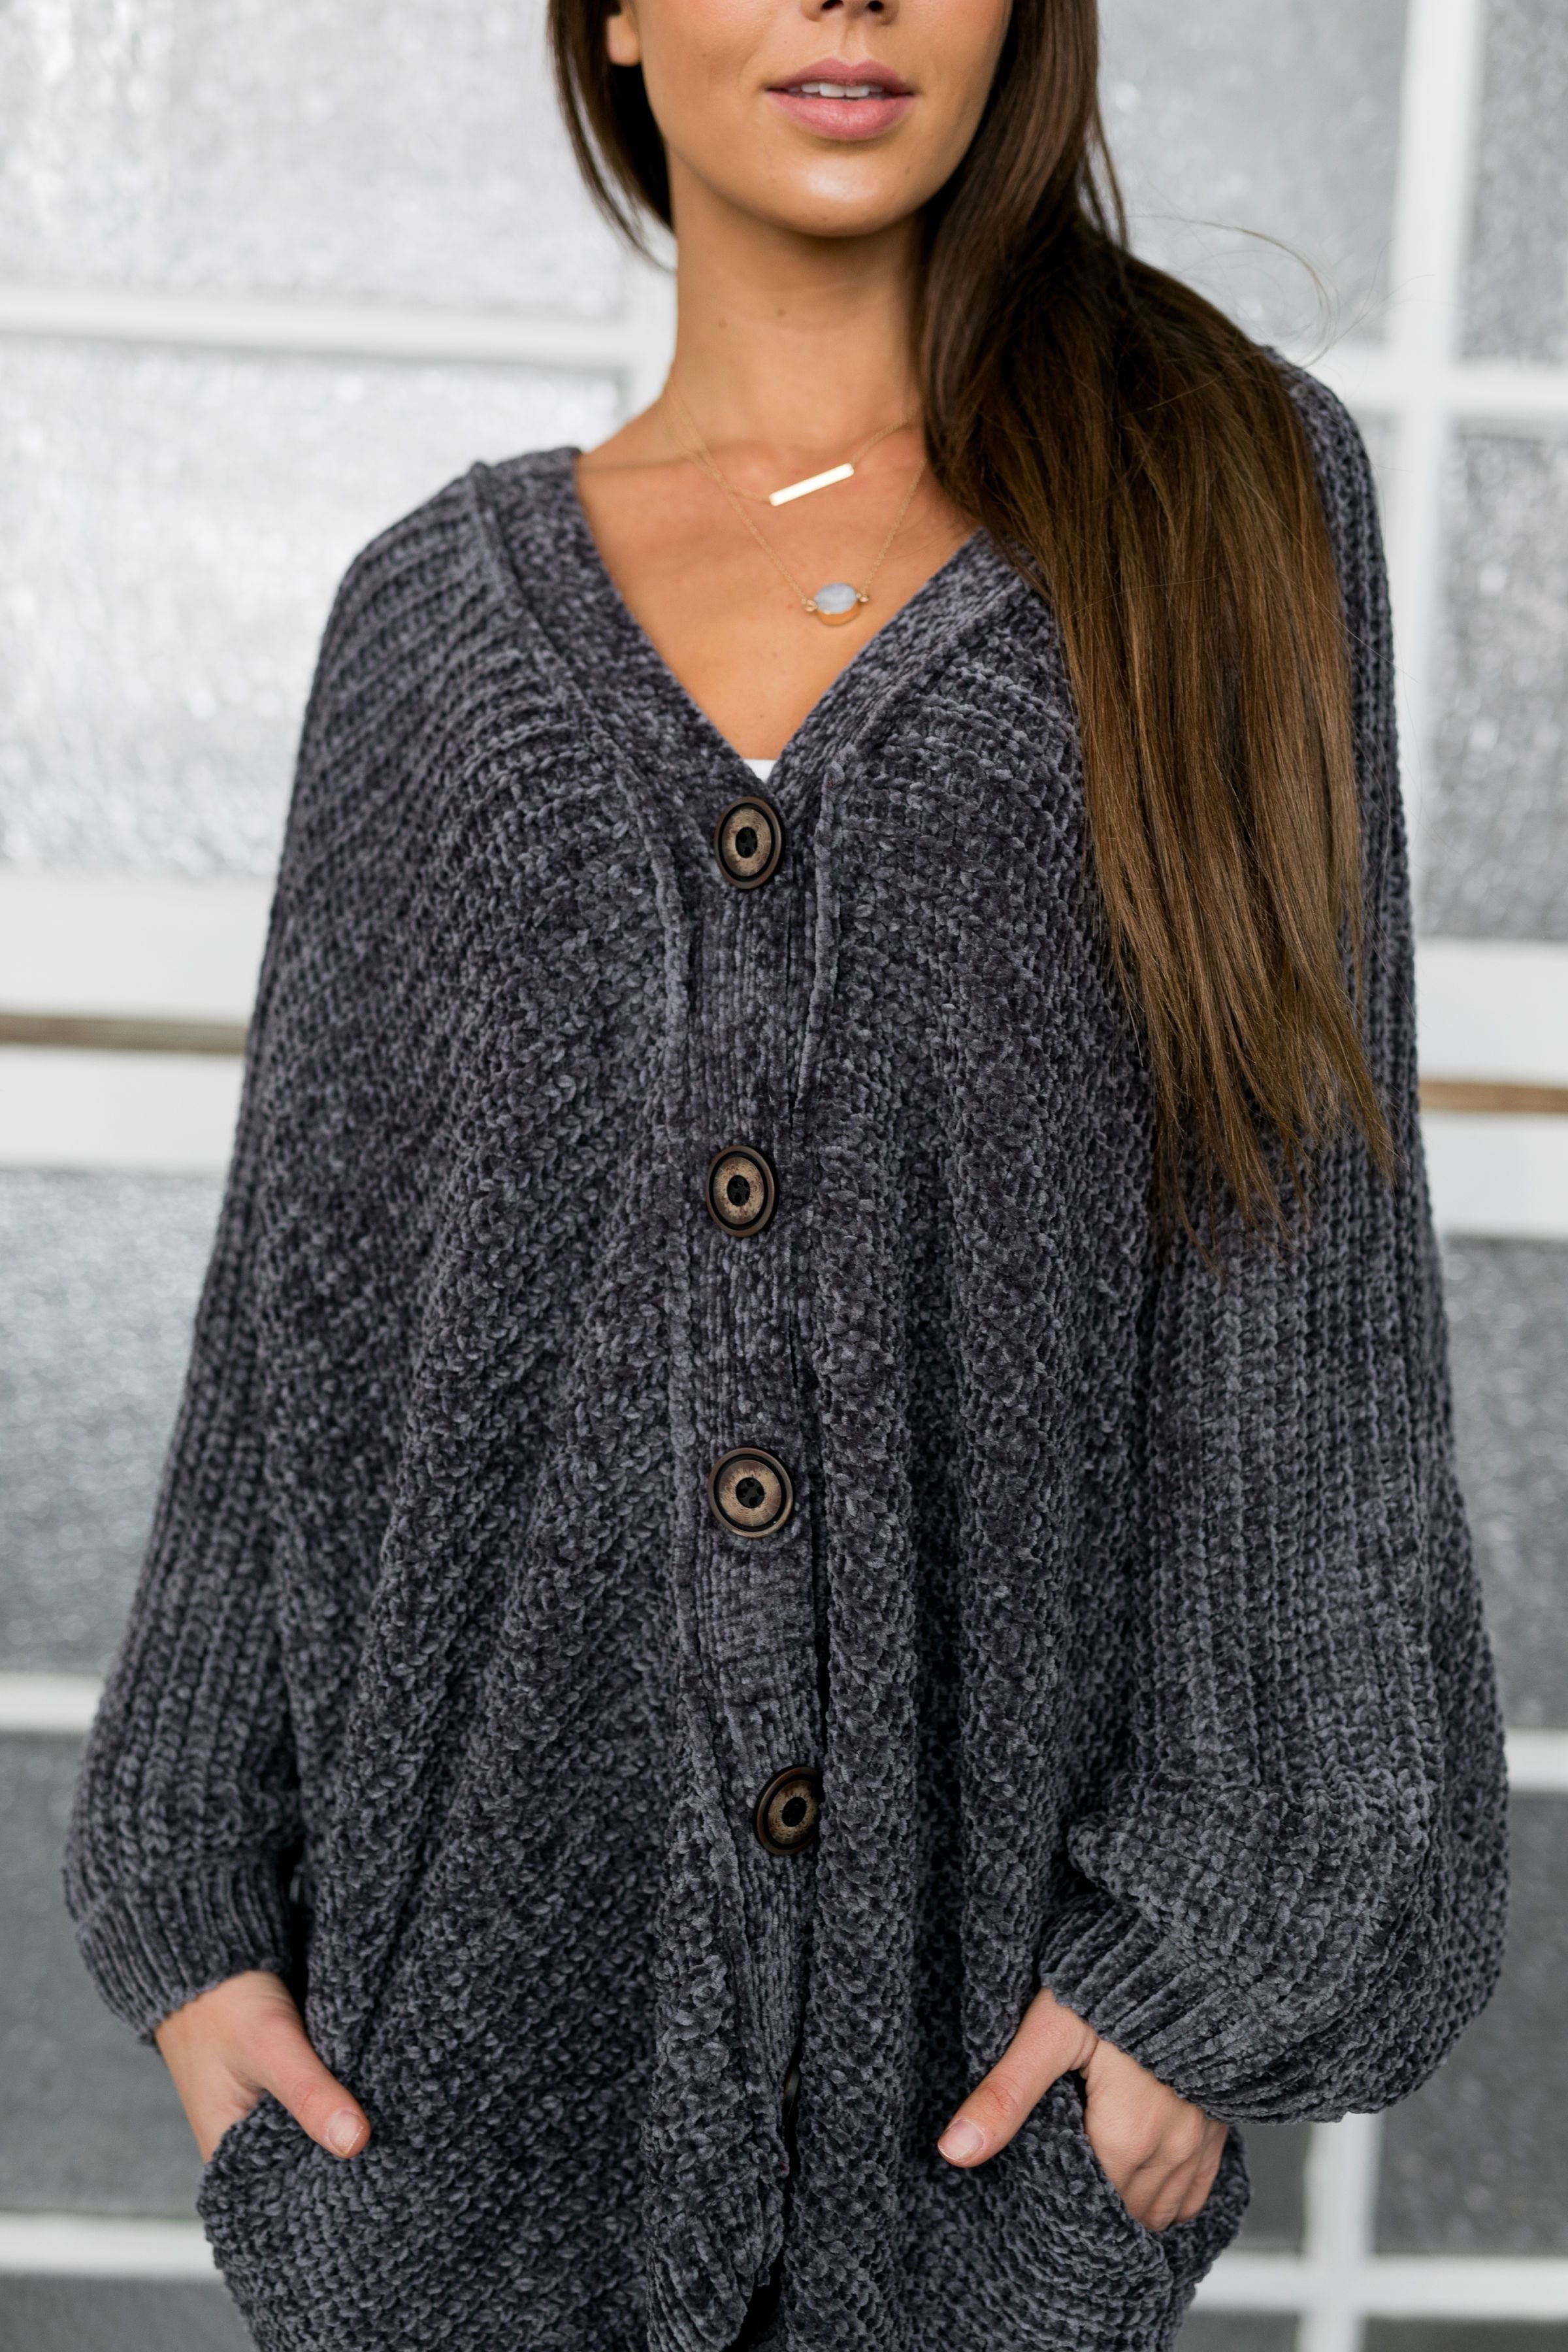 Faded Memories Chenille Cardigan In Charcoal - ALL SALES FINAL